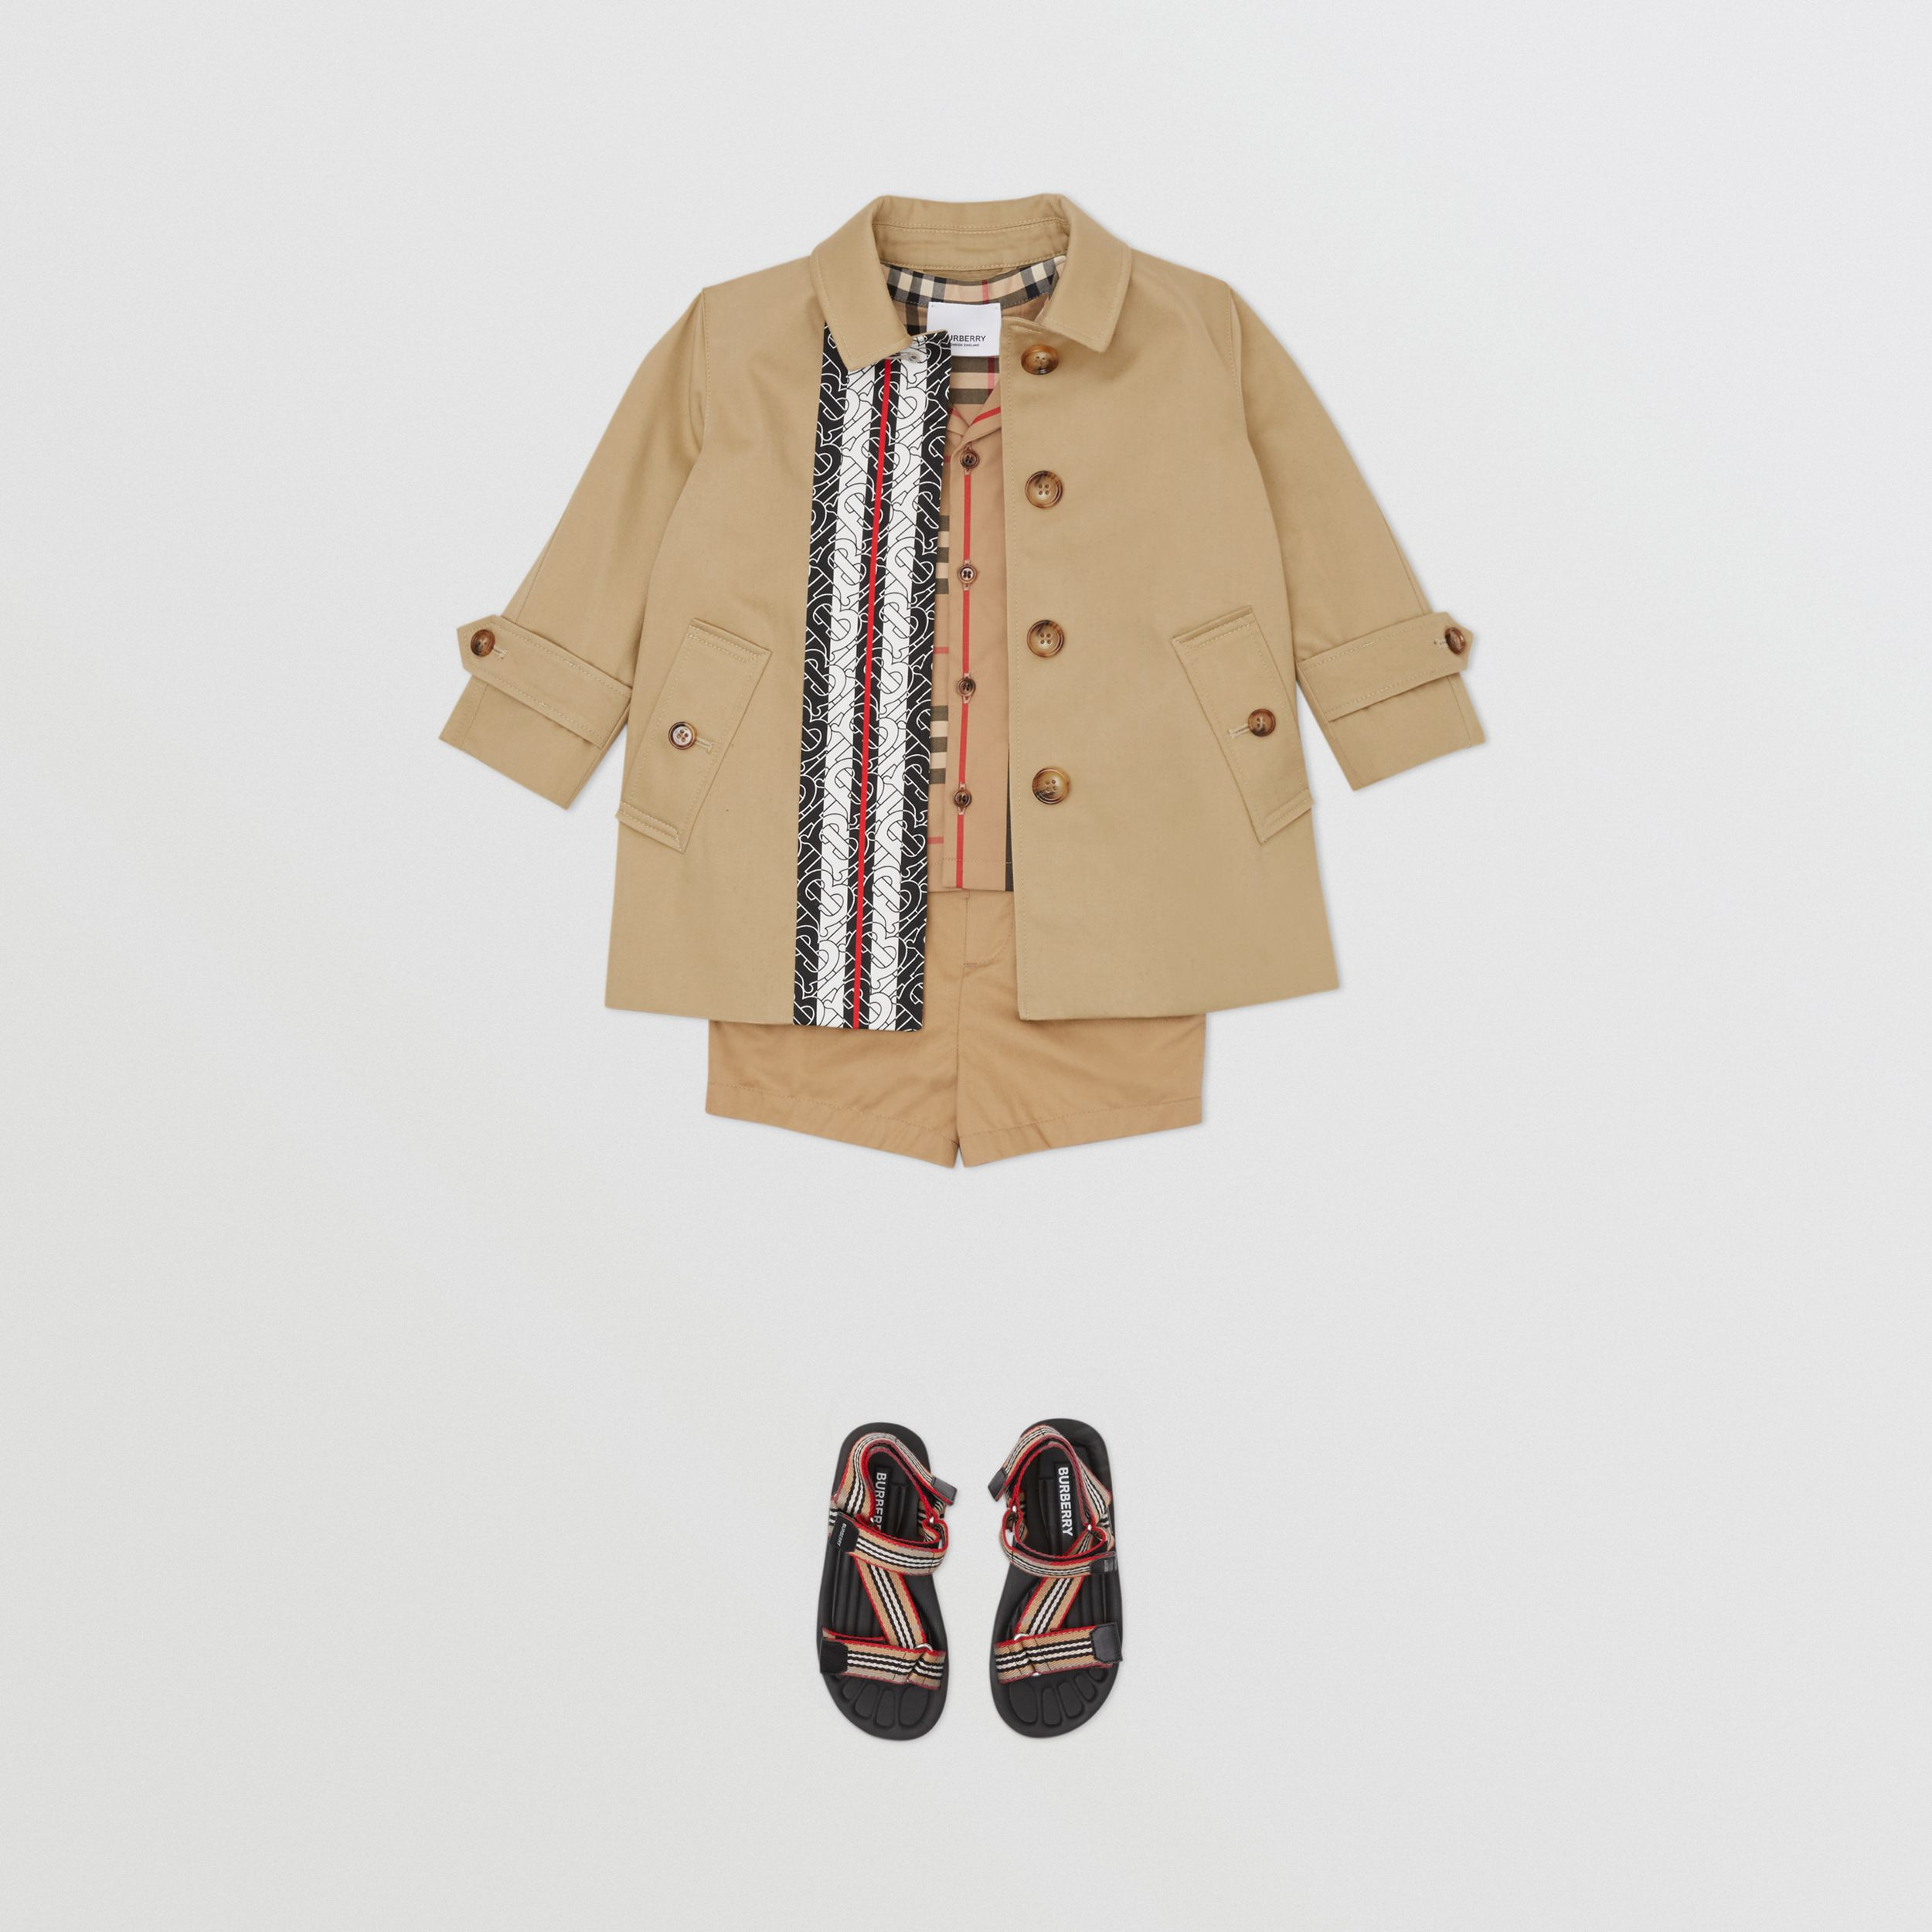 Monogram Stripe Print Cotton Car Coat in Honey - Children | Burberry - 4